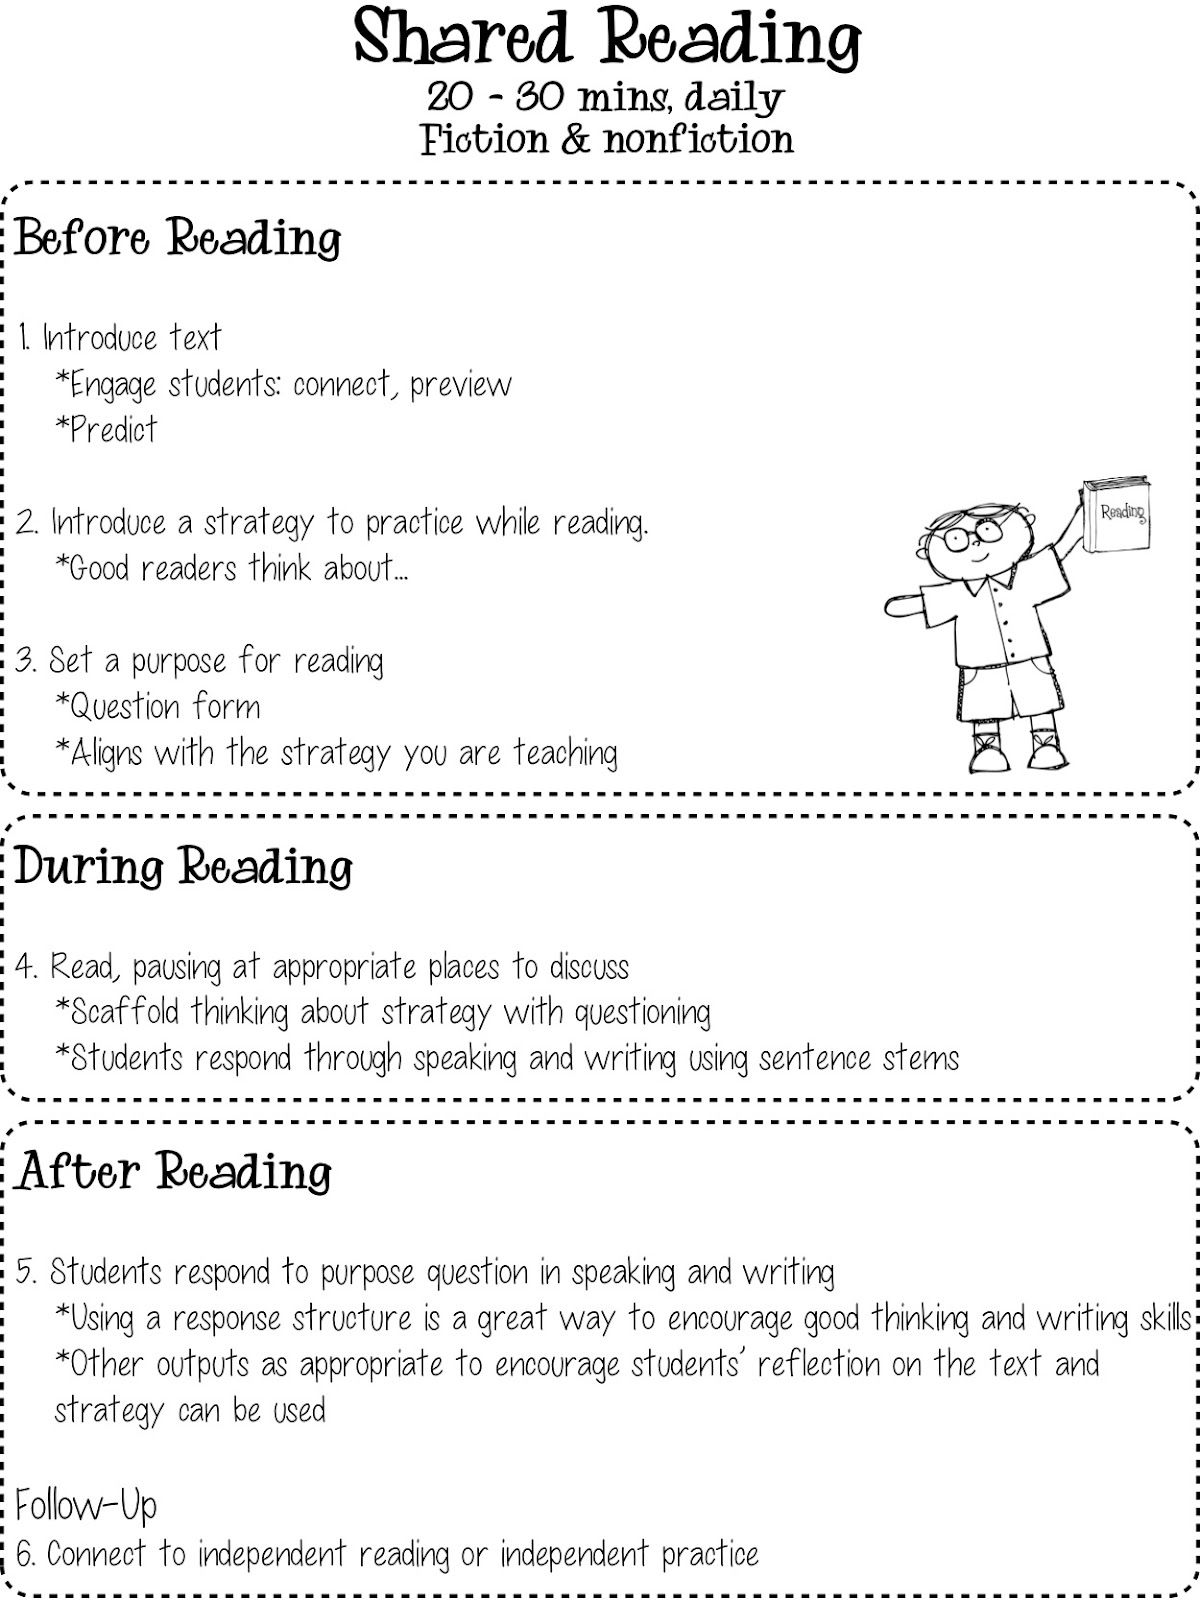 This Shared Reading Chart Is Great For Teachers And Students Teachers Can Use This Guide To